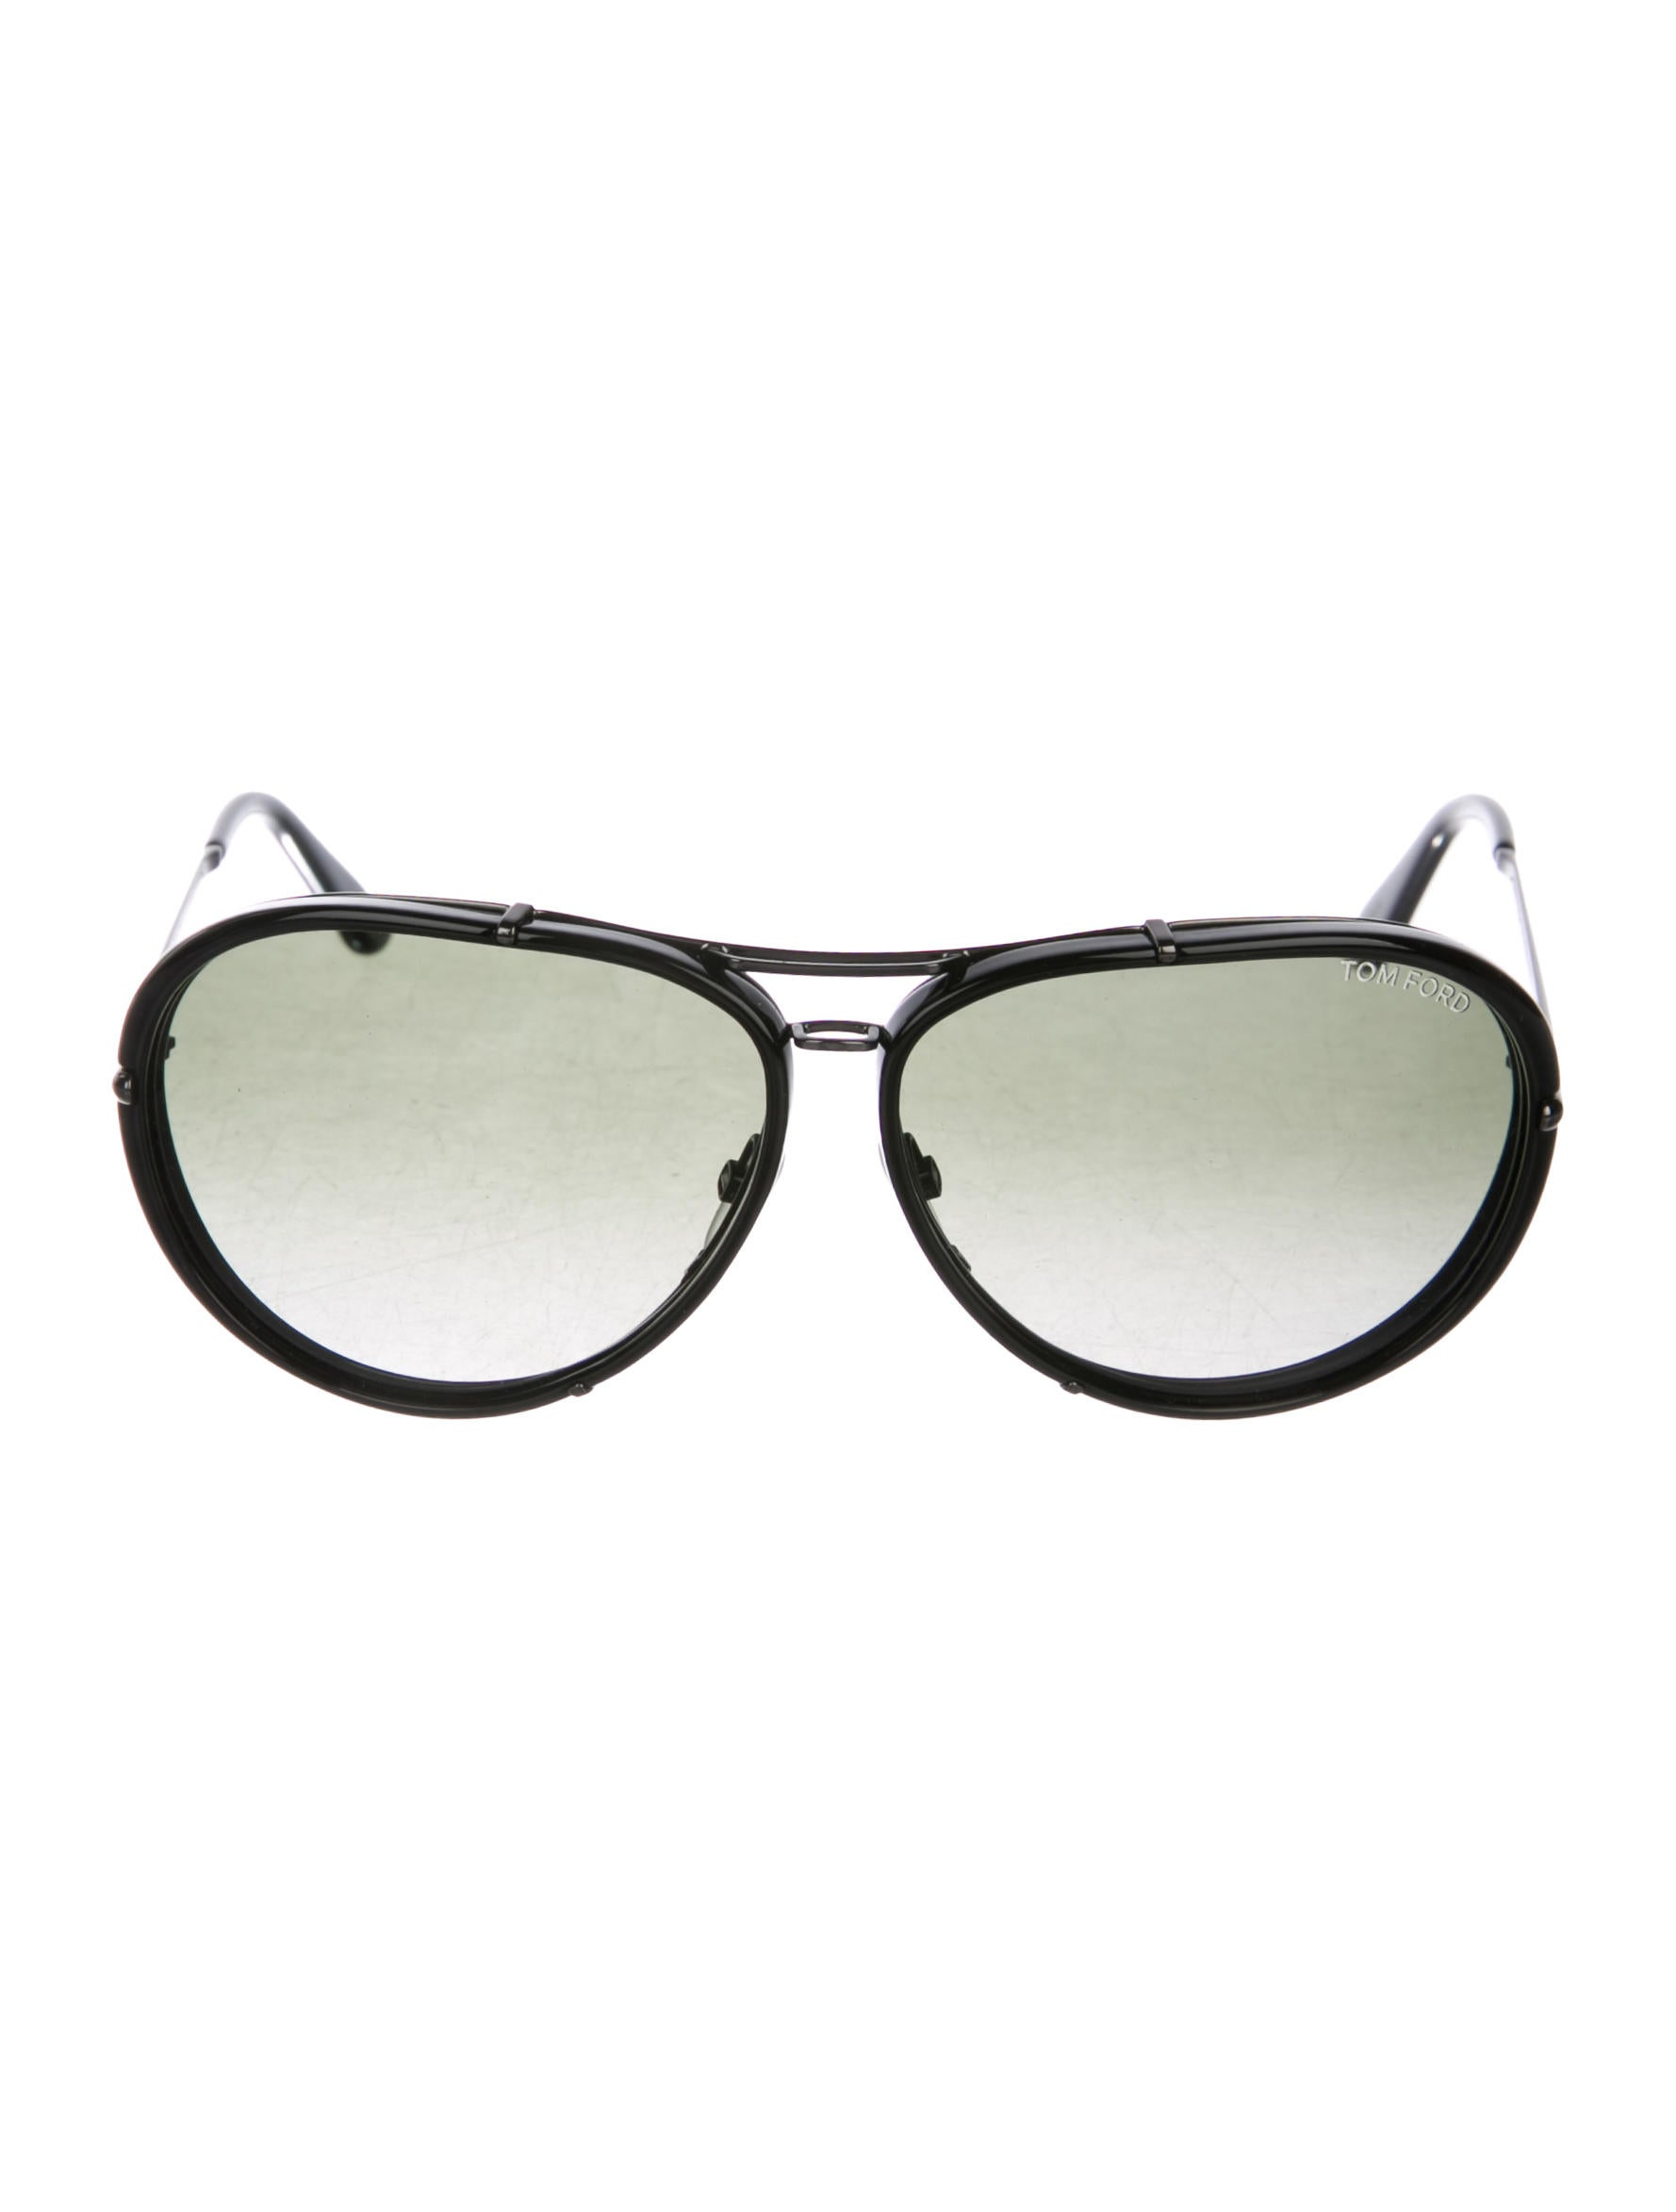 b272bab600 Tom Ford Cyrille Aviator Polarized Sunglasses - Accessories ...